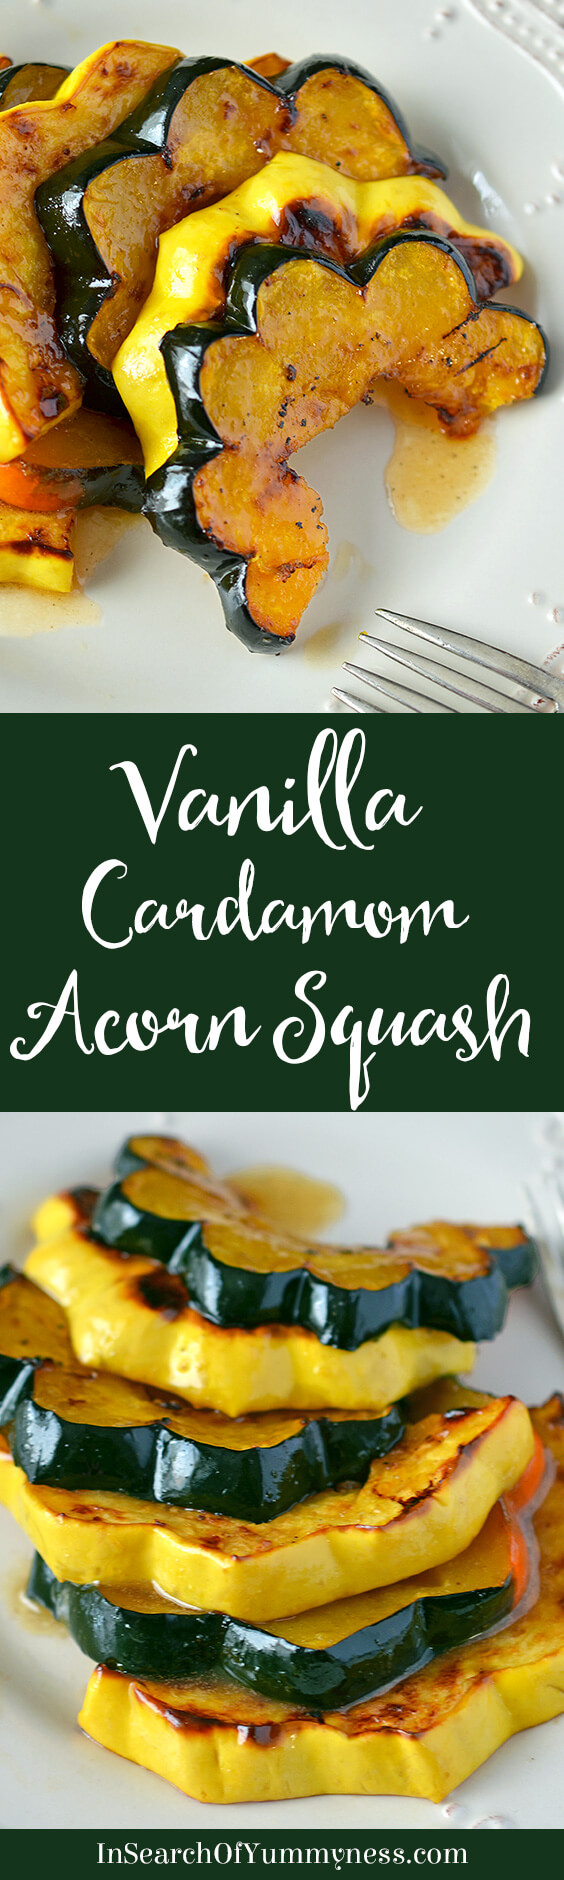 If you're looking for a unique side dish for Thanksgiving or Christmas this year, try this Vanilla Cardamom Glazed Acorn Squash #recipe from Susie Middleton.